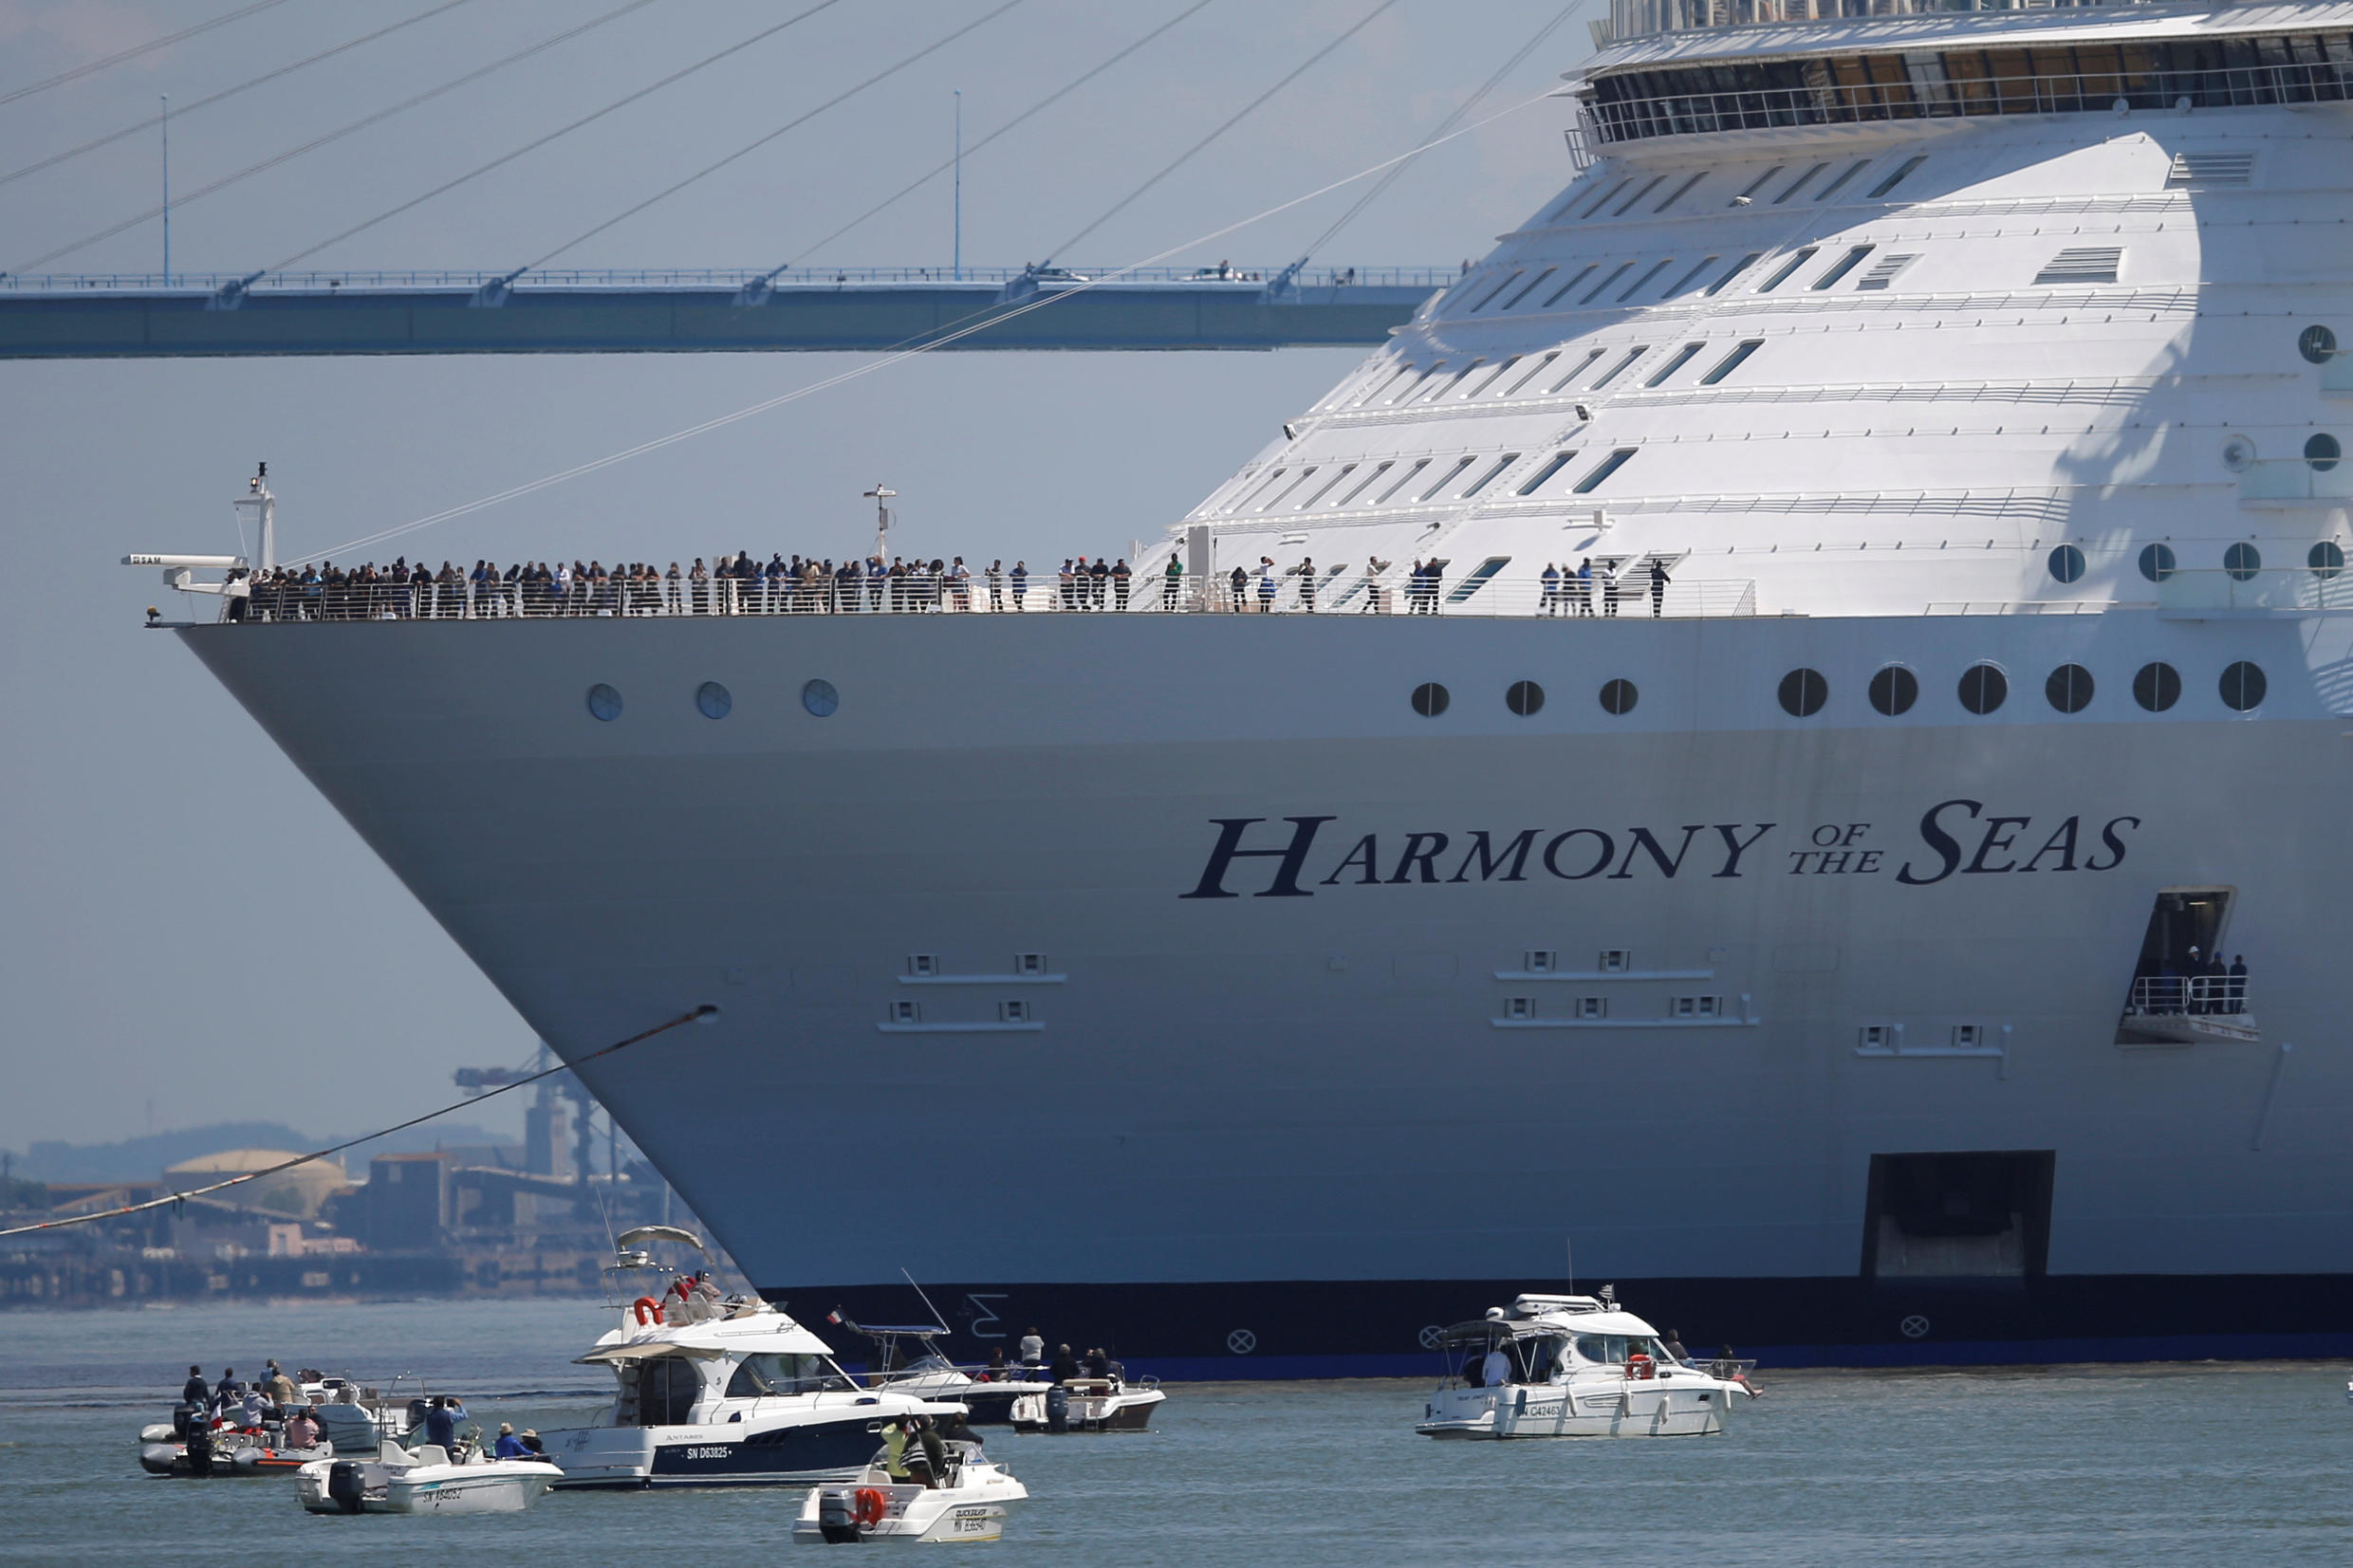 The Harmony of the Seas leaves the STX Les Chantiers de l'Atlantique shipyard on 15 May 2016